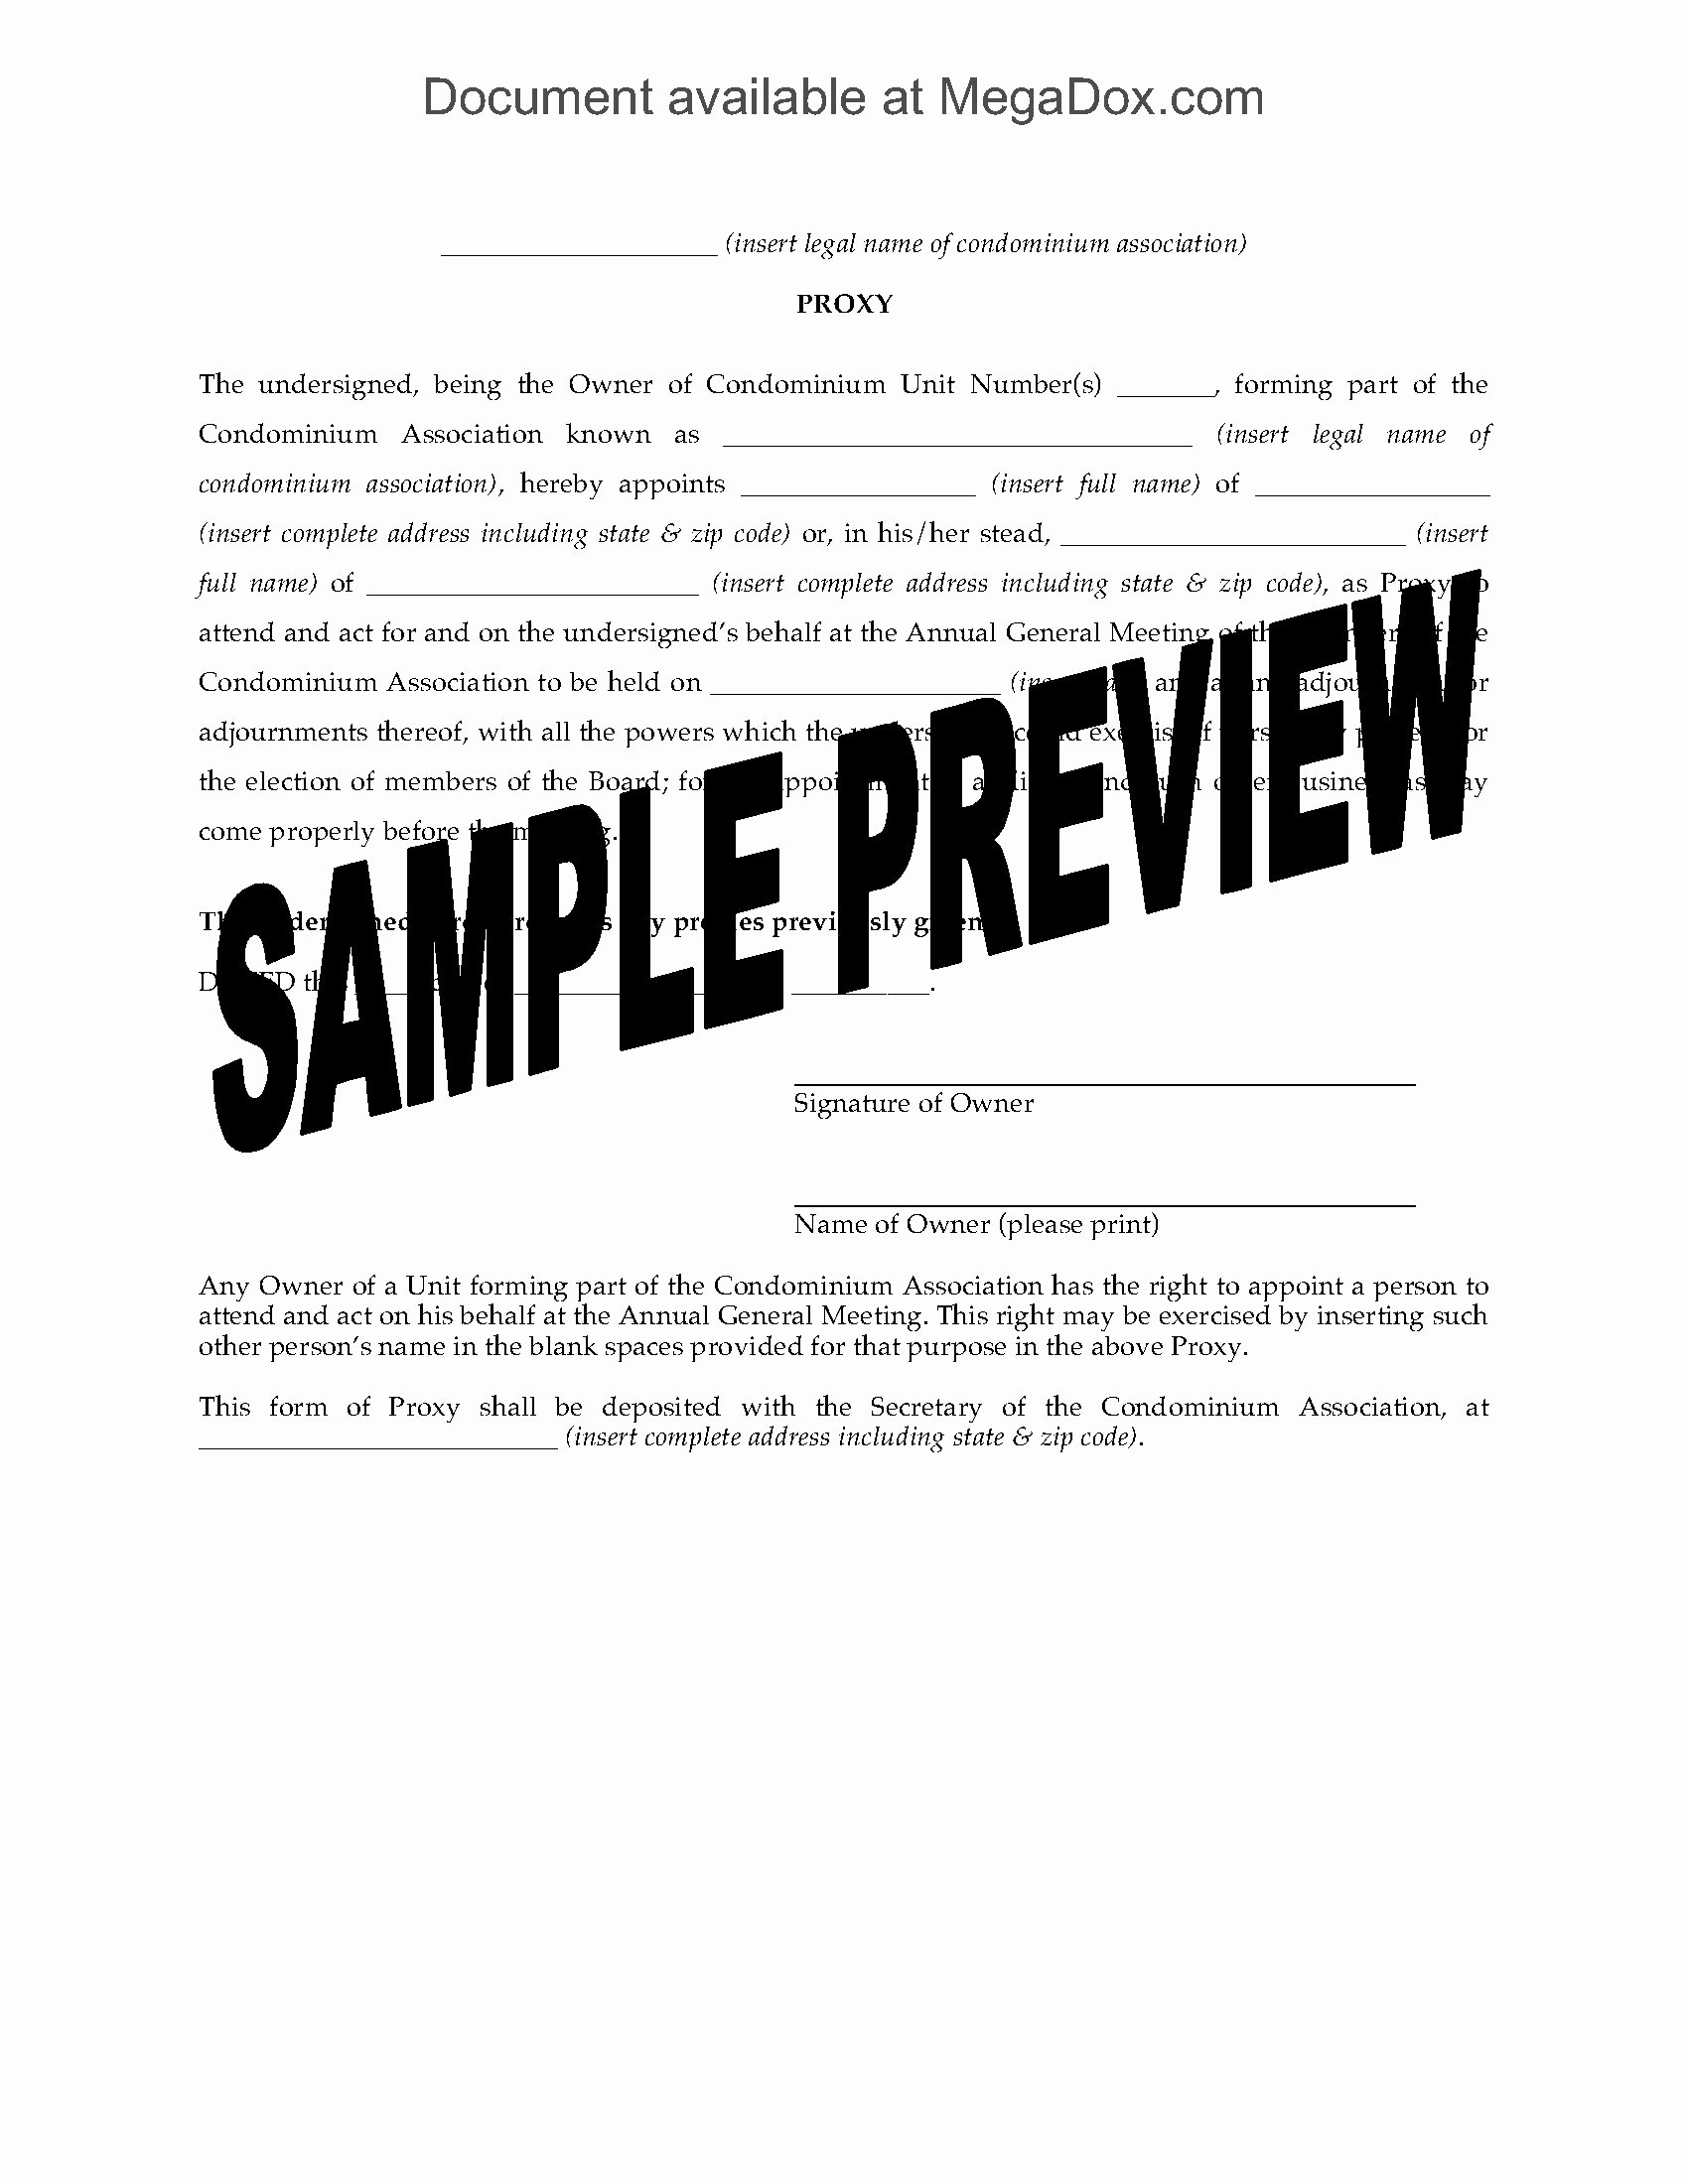 Hoa Proxy Vote form Template Awesome Usa Proxy form for Condo association Agm